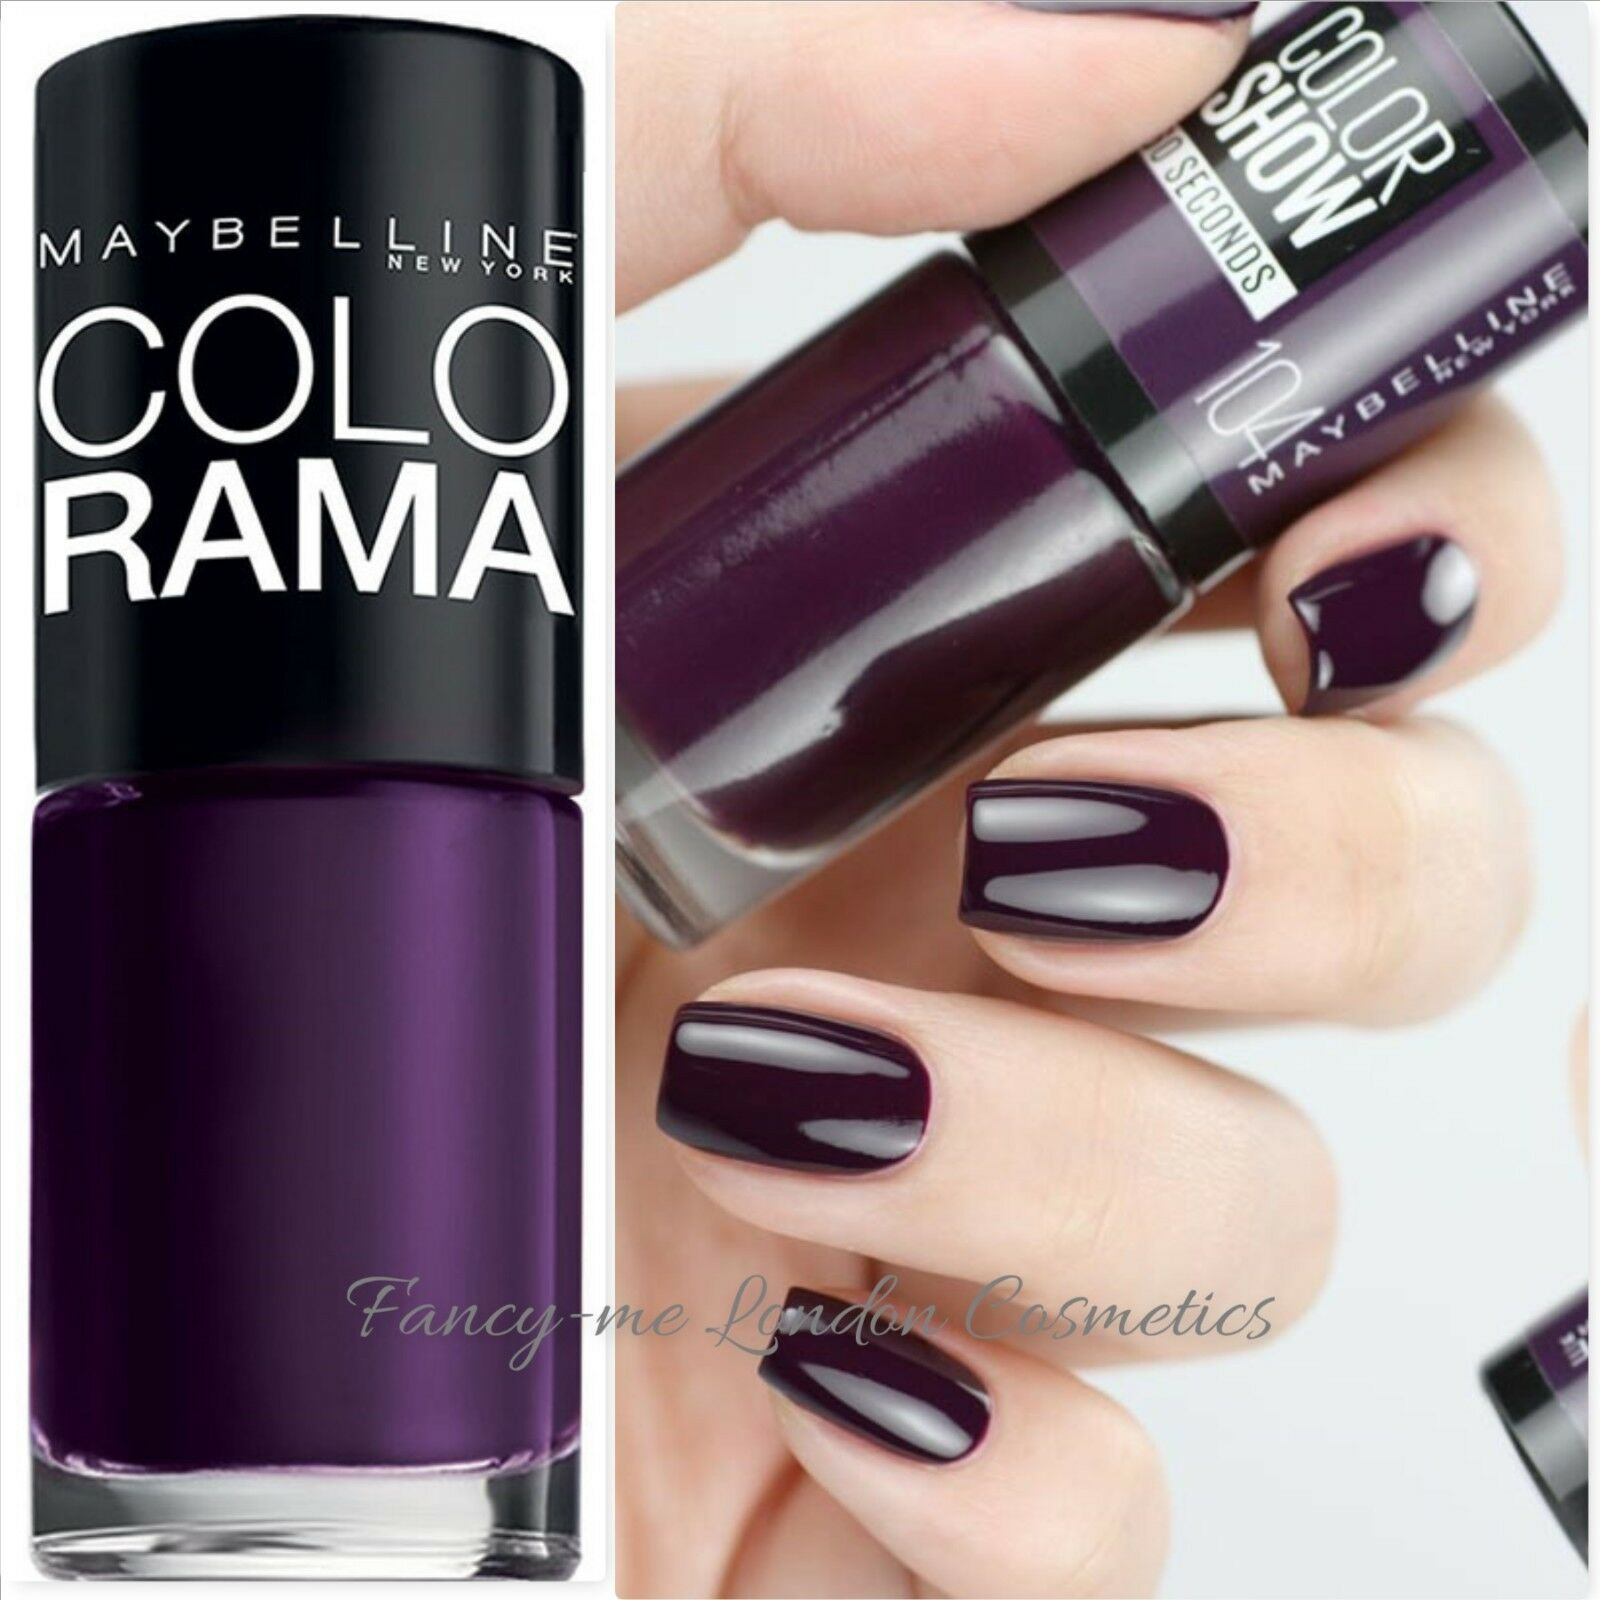 Best Maybelline Colorama Nail Polish deals | Compare Prices on ...